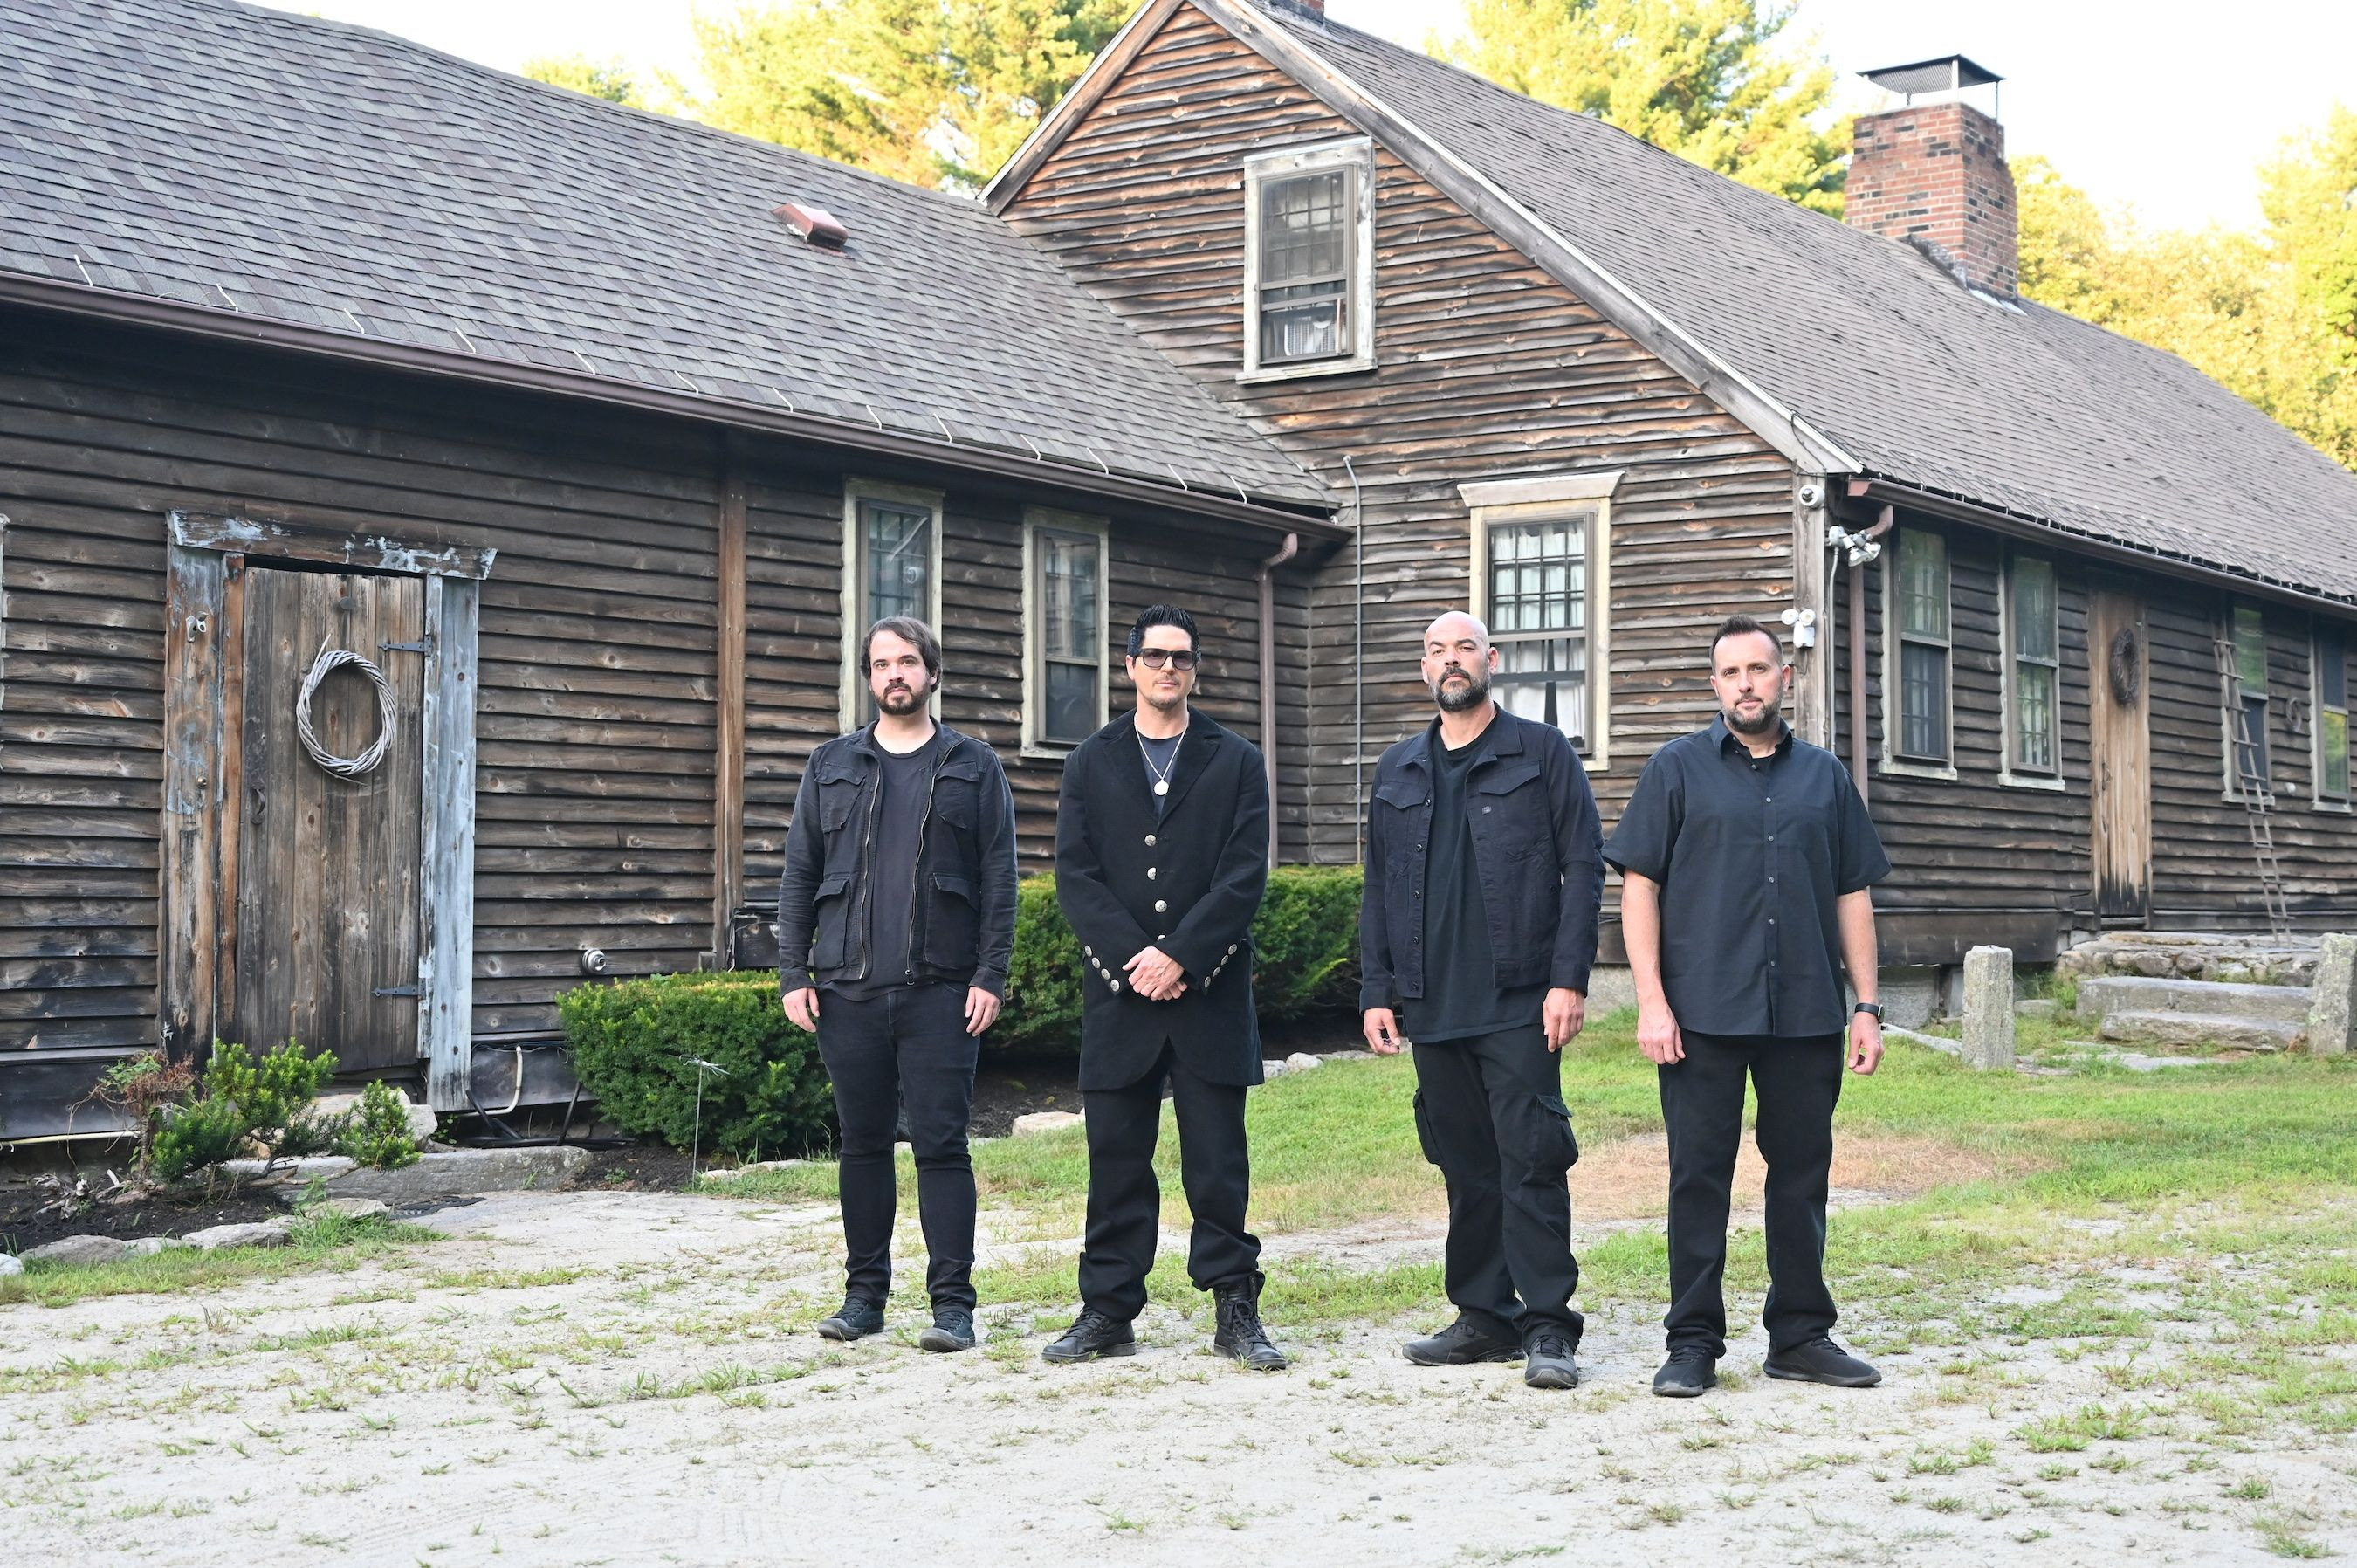 Review Of Ghost Adventures Halloween Special 2020 Ghost Adventures' Zak Bagans Says He Fell Ill After Investigating